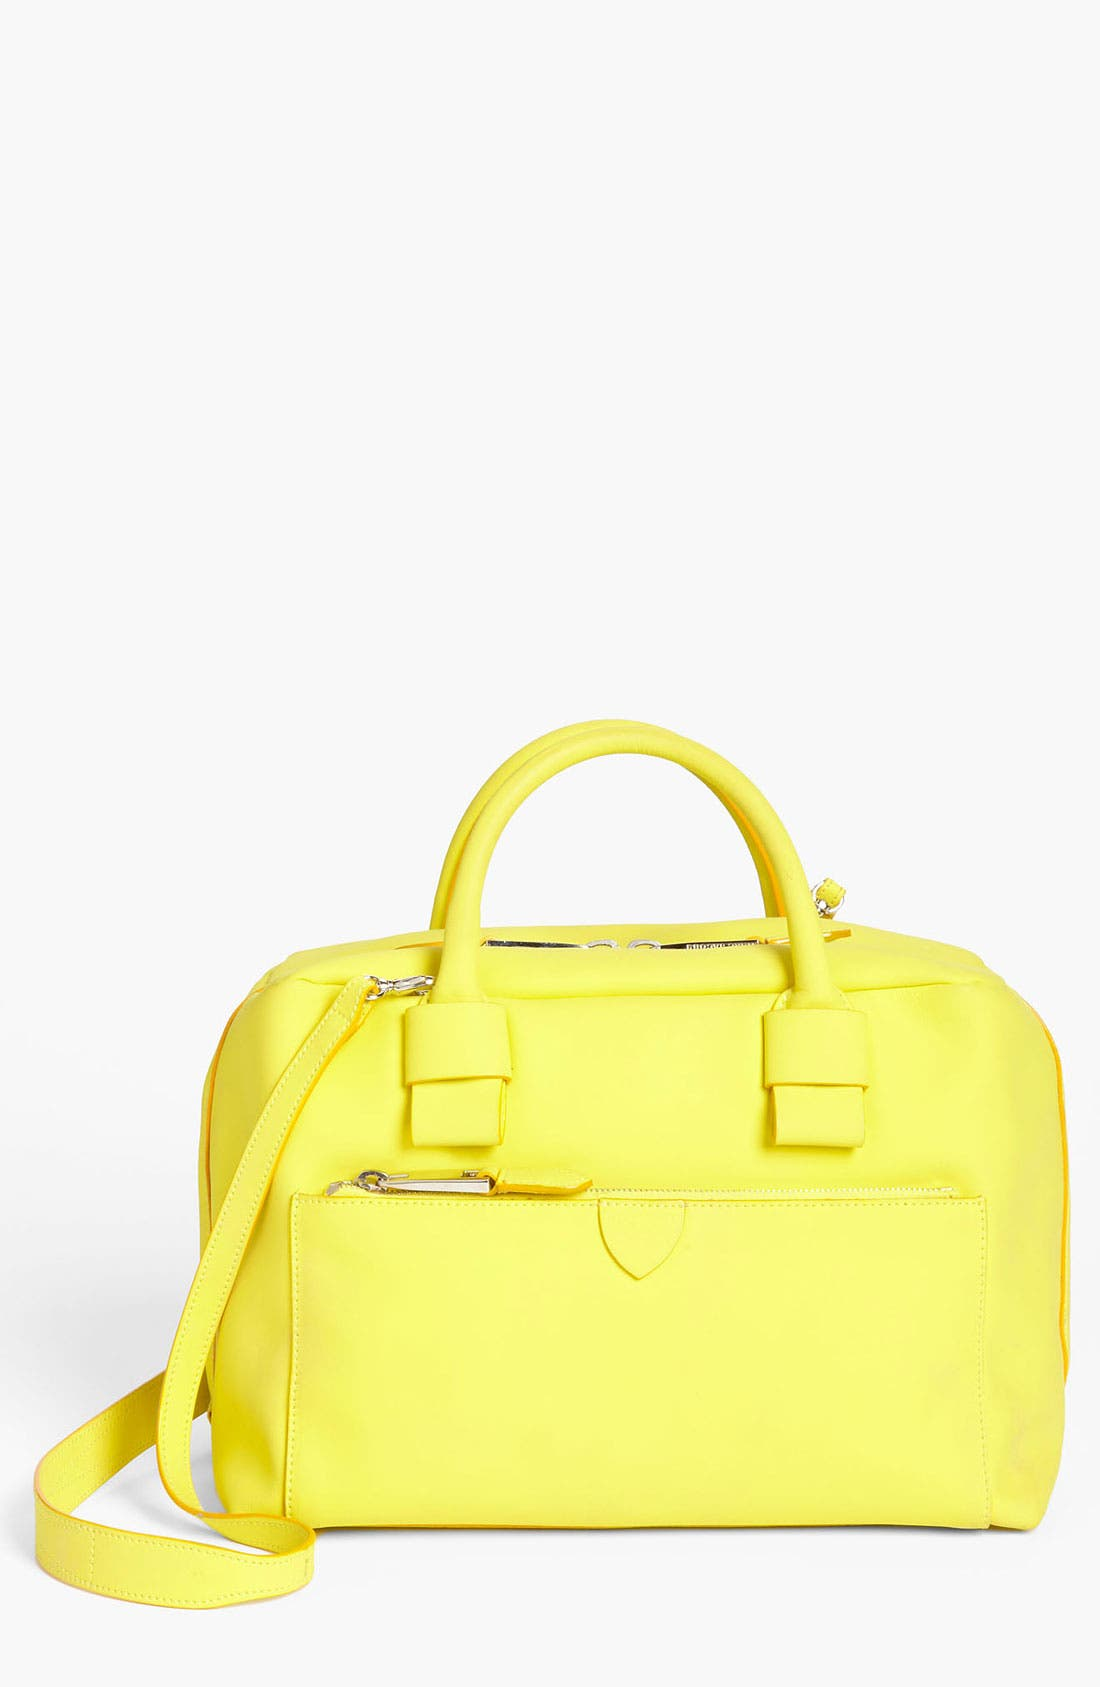 Alternate Image 1 Selected - MARC JACOBS 'Small Antonia' Rubberized Leather Satchel